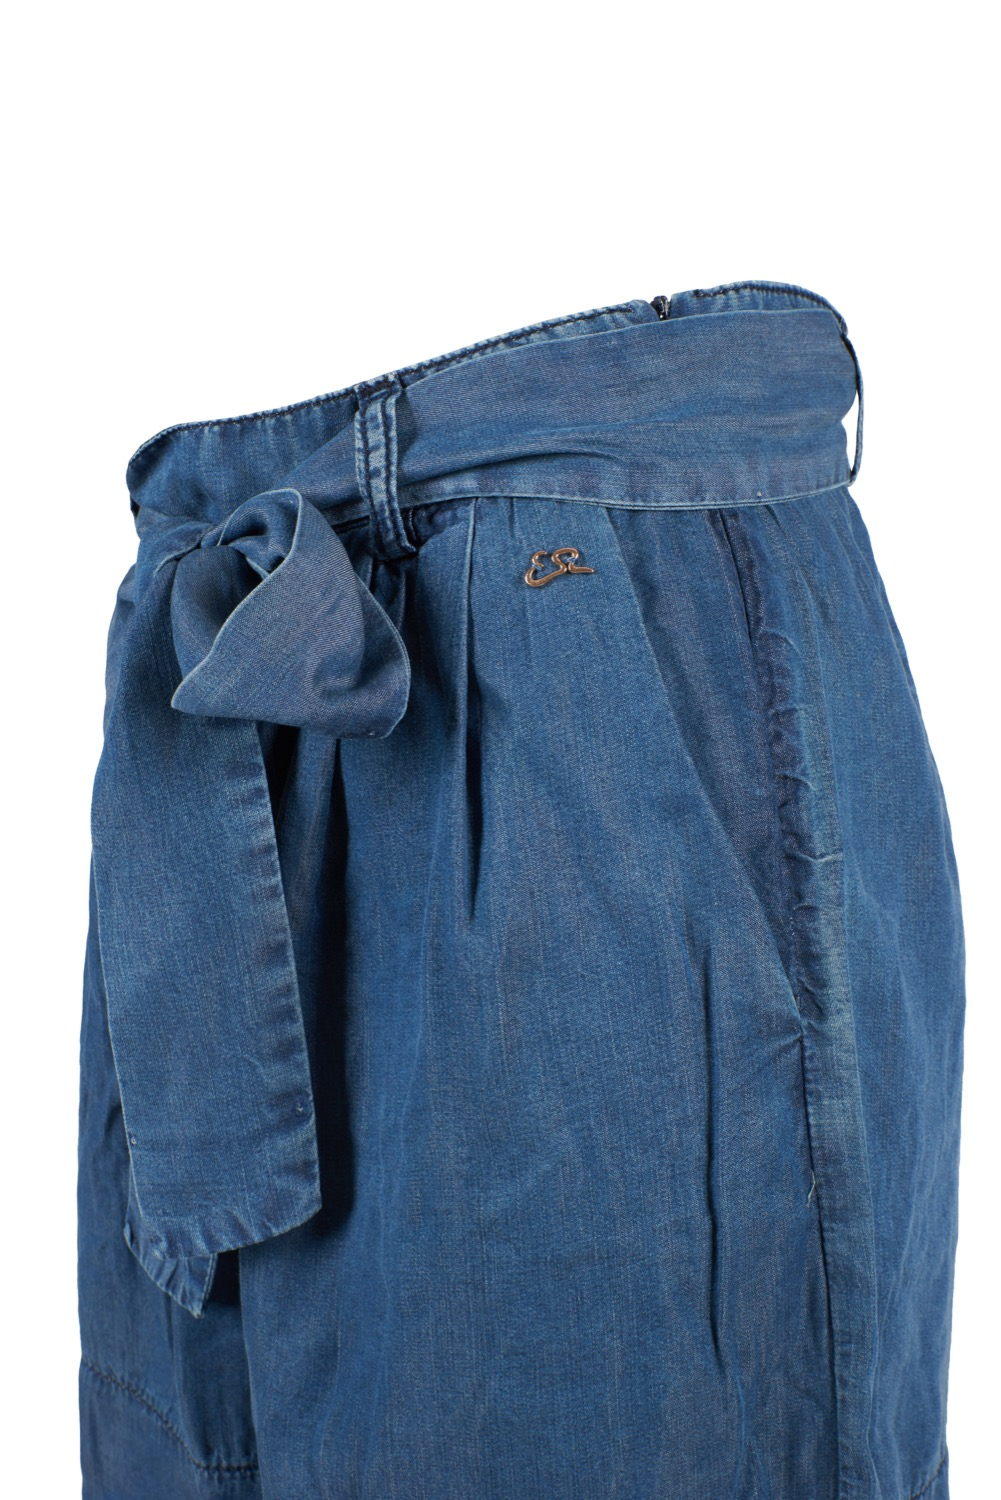 Shorts a caramella in jeans YES-ZEE   Shorts   P279-X805J711